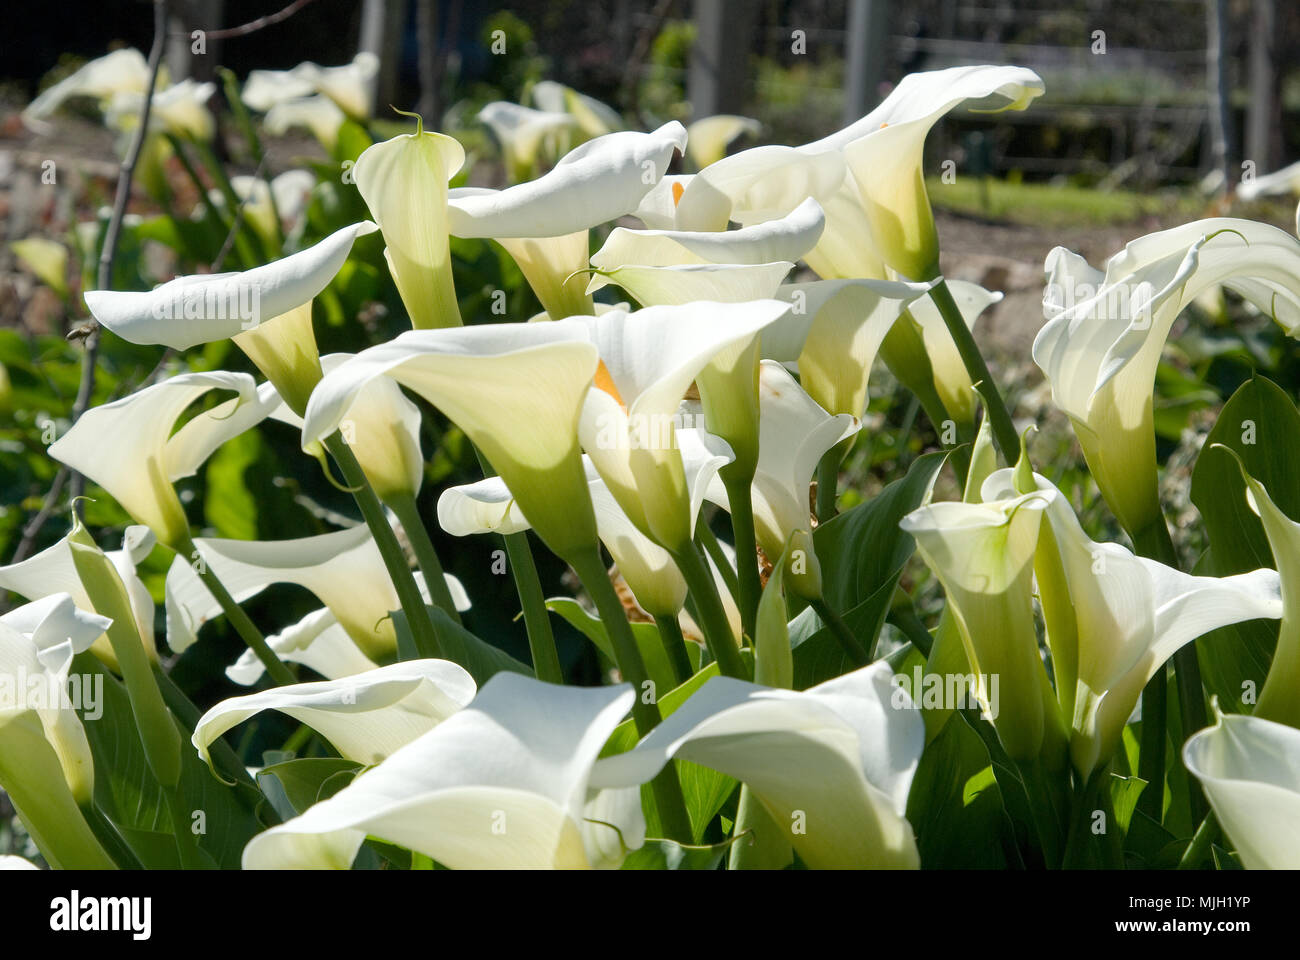 Zantedeschia aethiopica (known as calla lily and arum lily) is a species in the family Araceae - Stock Image